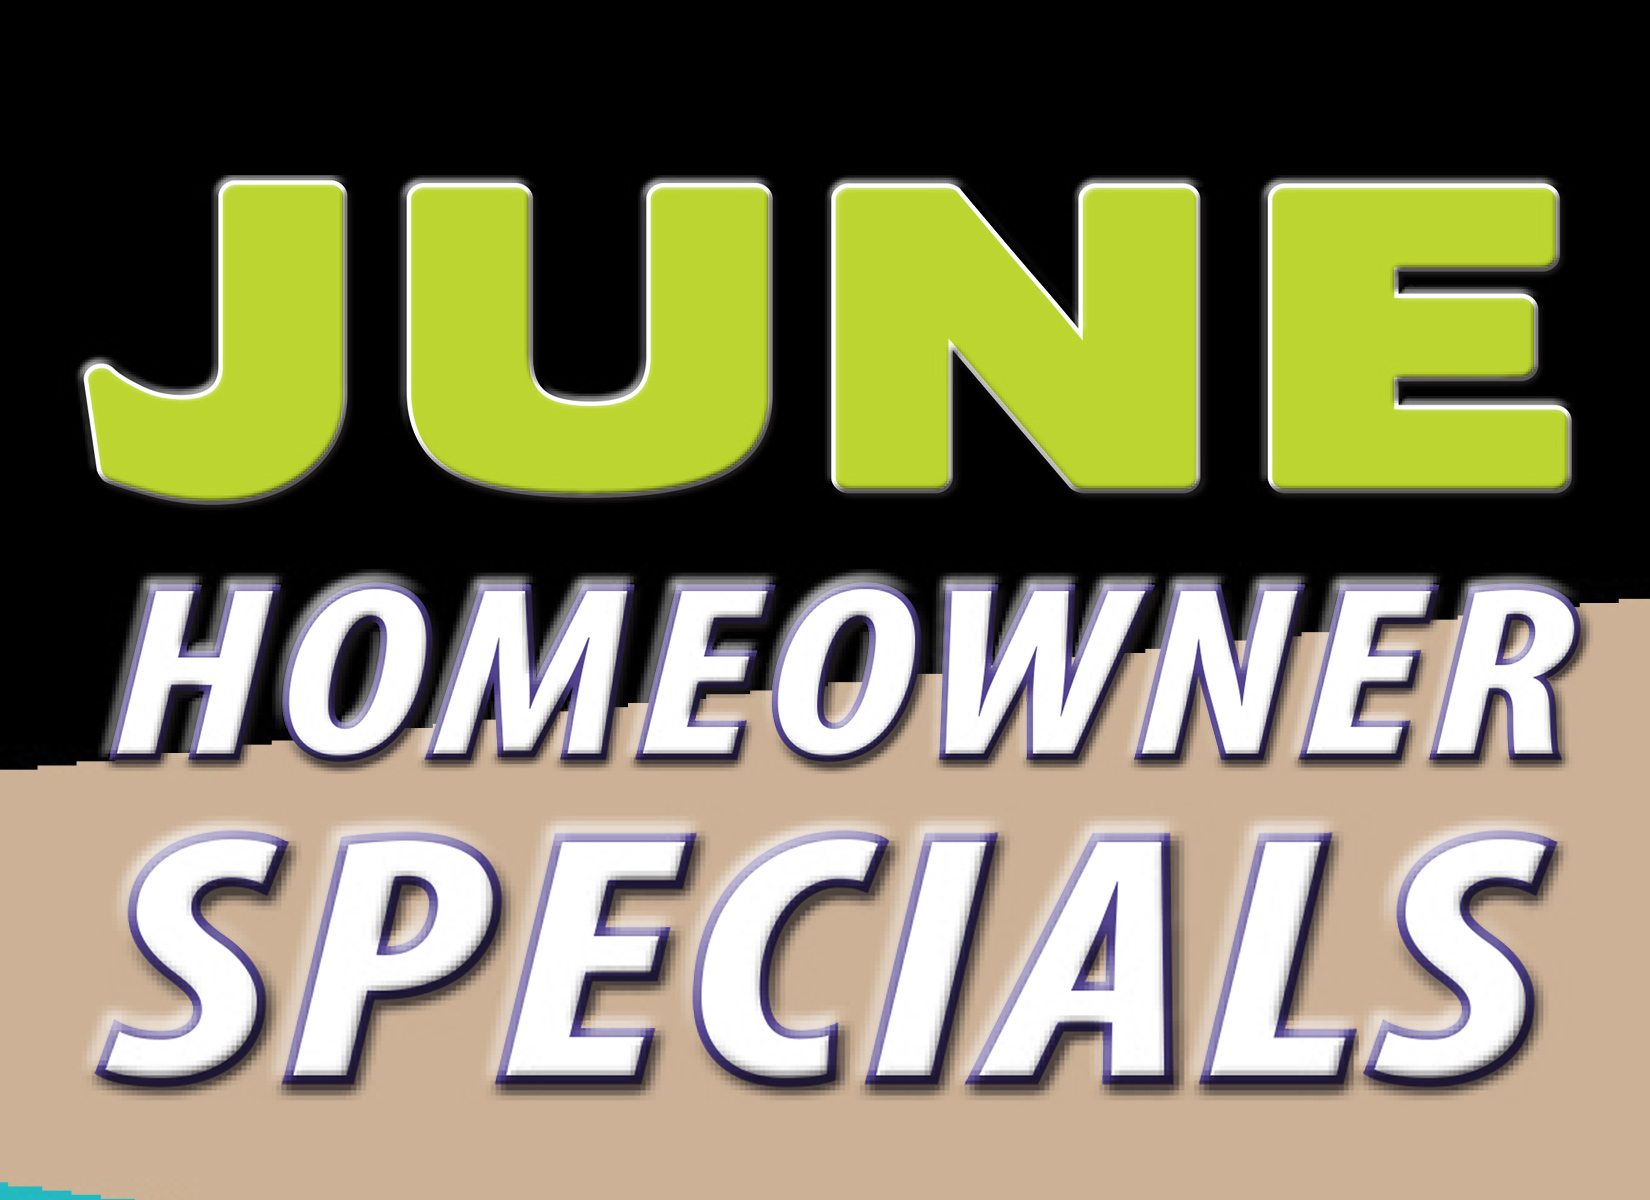 Homeowner Monthly Specials